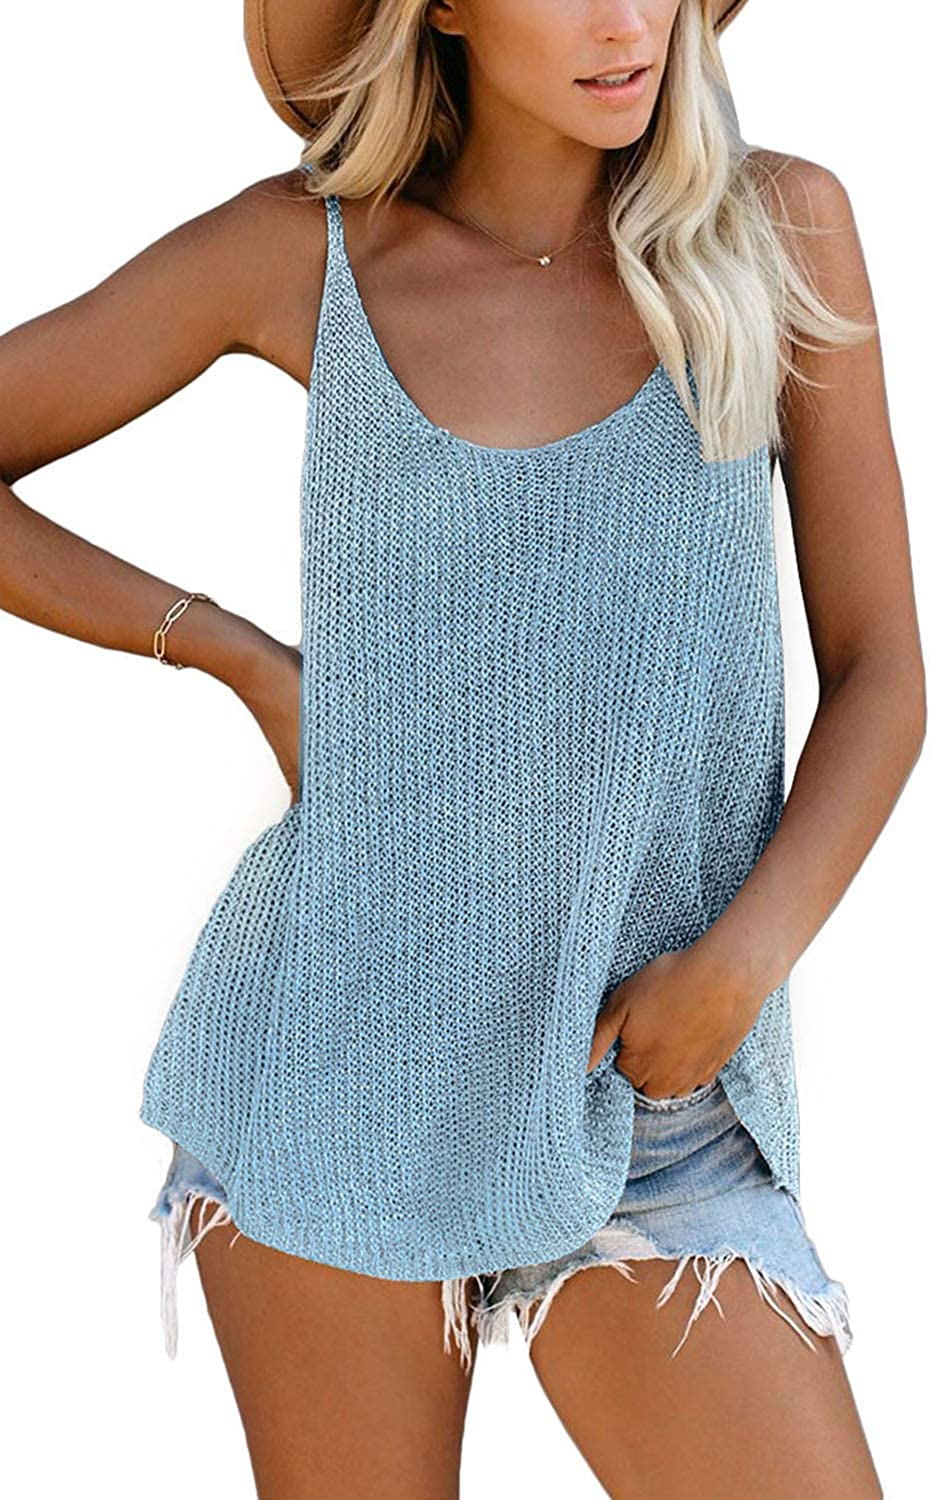 KINGFEN Knit Tank Tops and Blouses for Women Loose Fit Casual Sleeveless Shirts